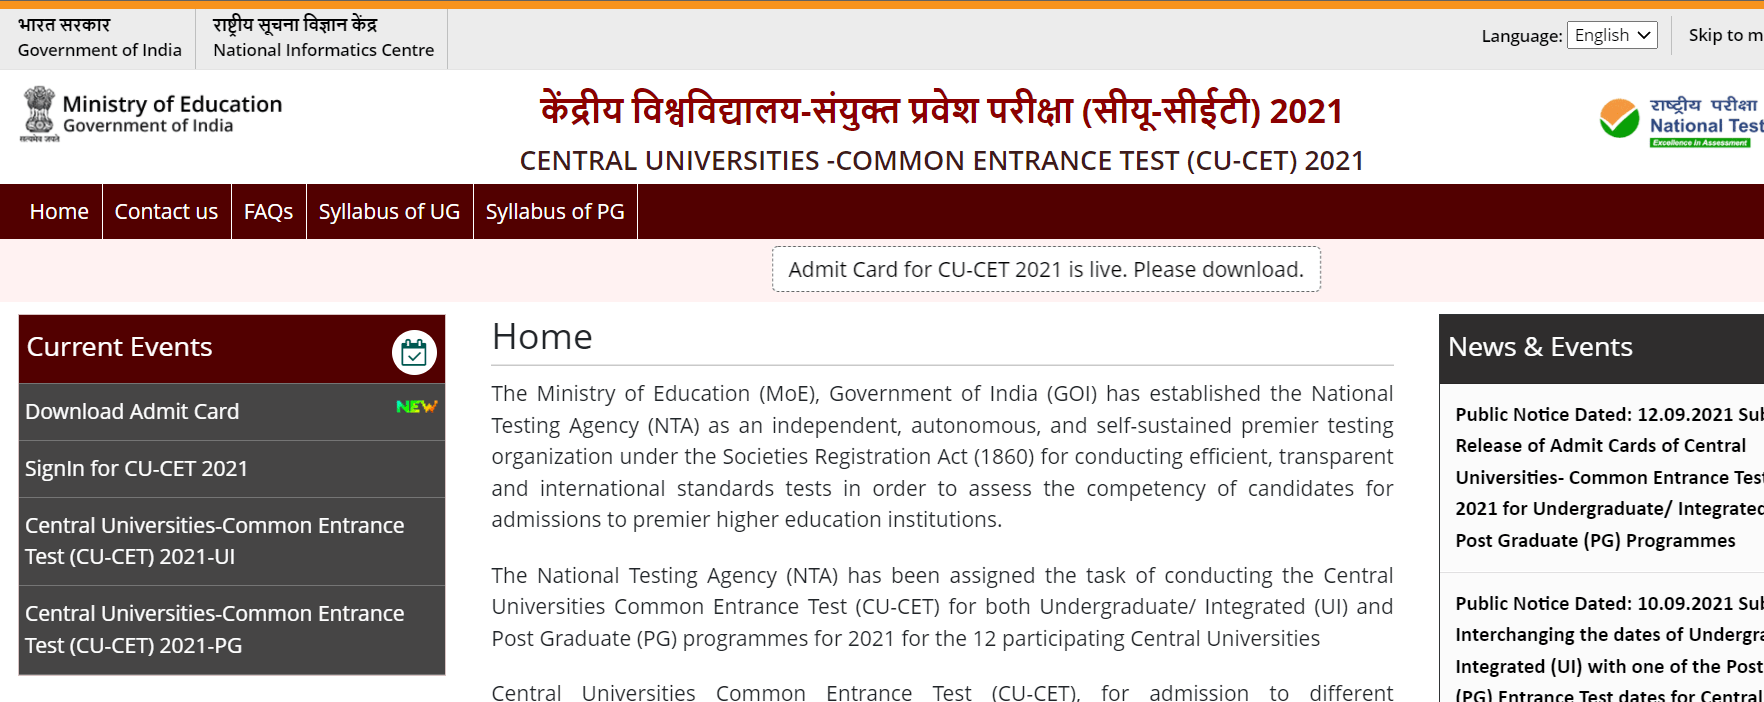 CUCET Results 2021 link